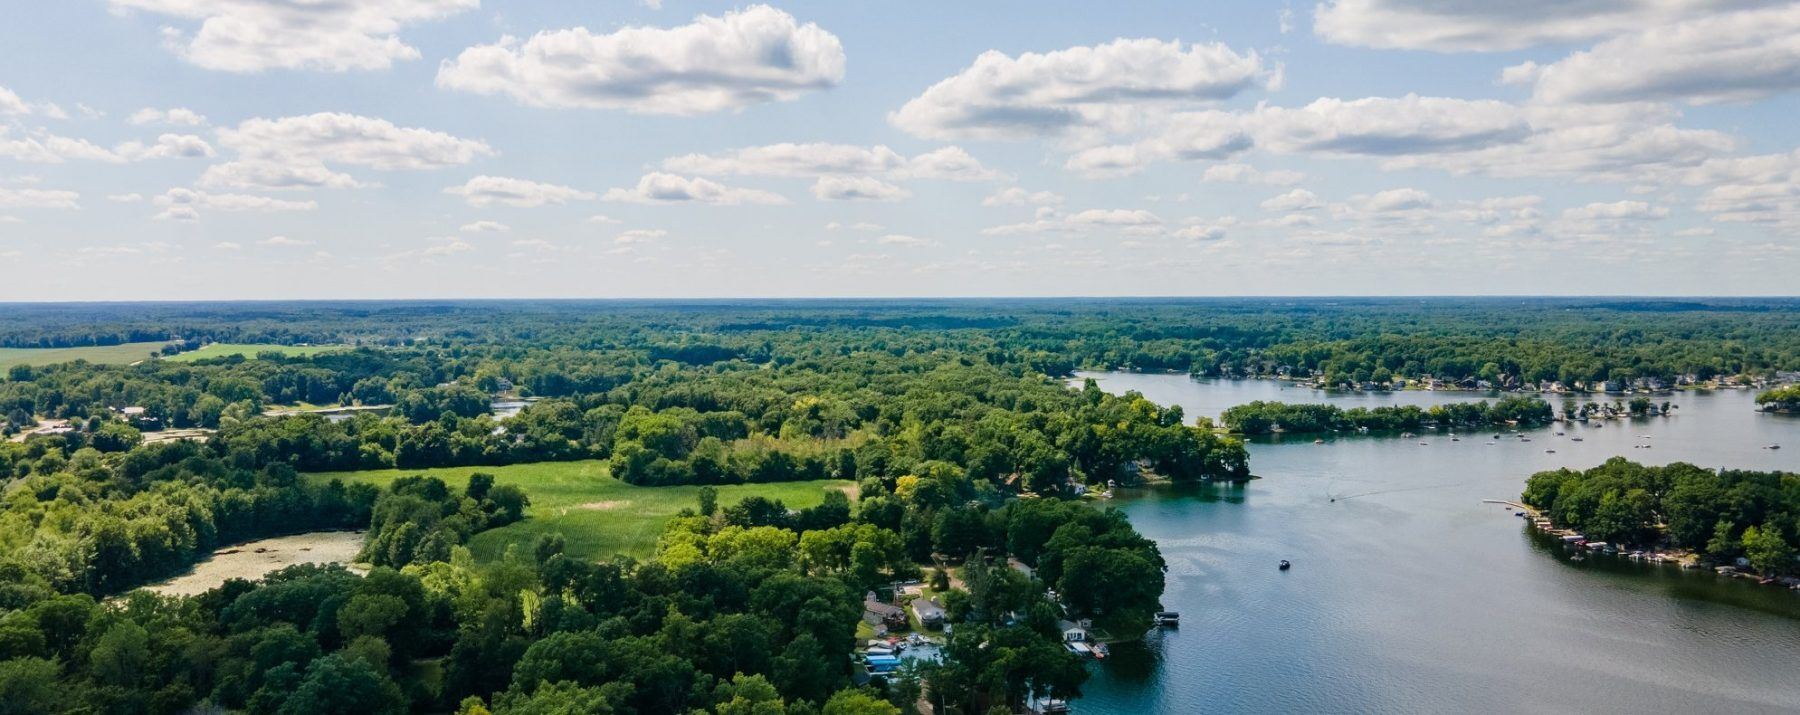 Best Mobile Home Living Cities in Genesee County, Michigan